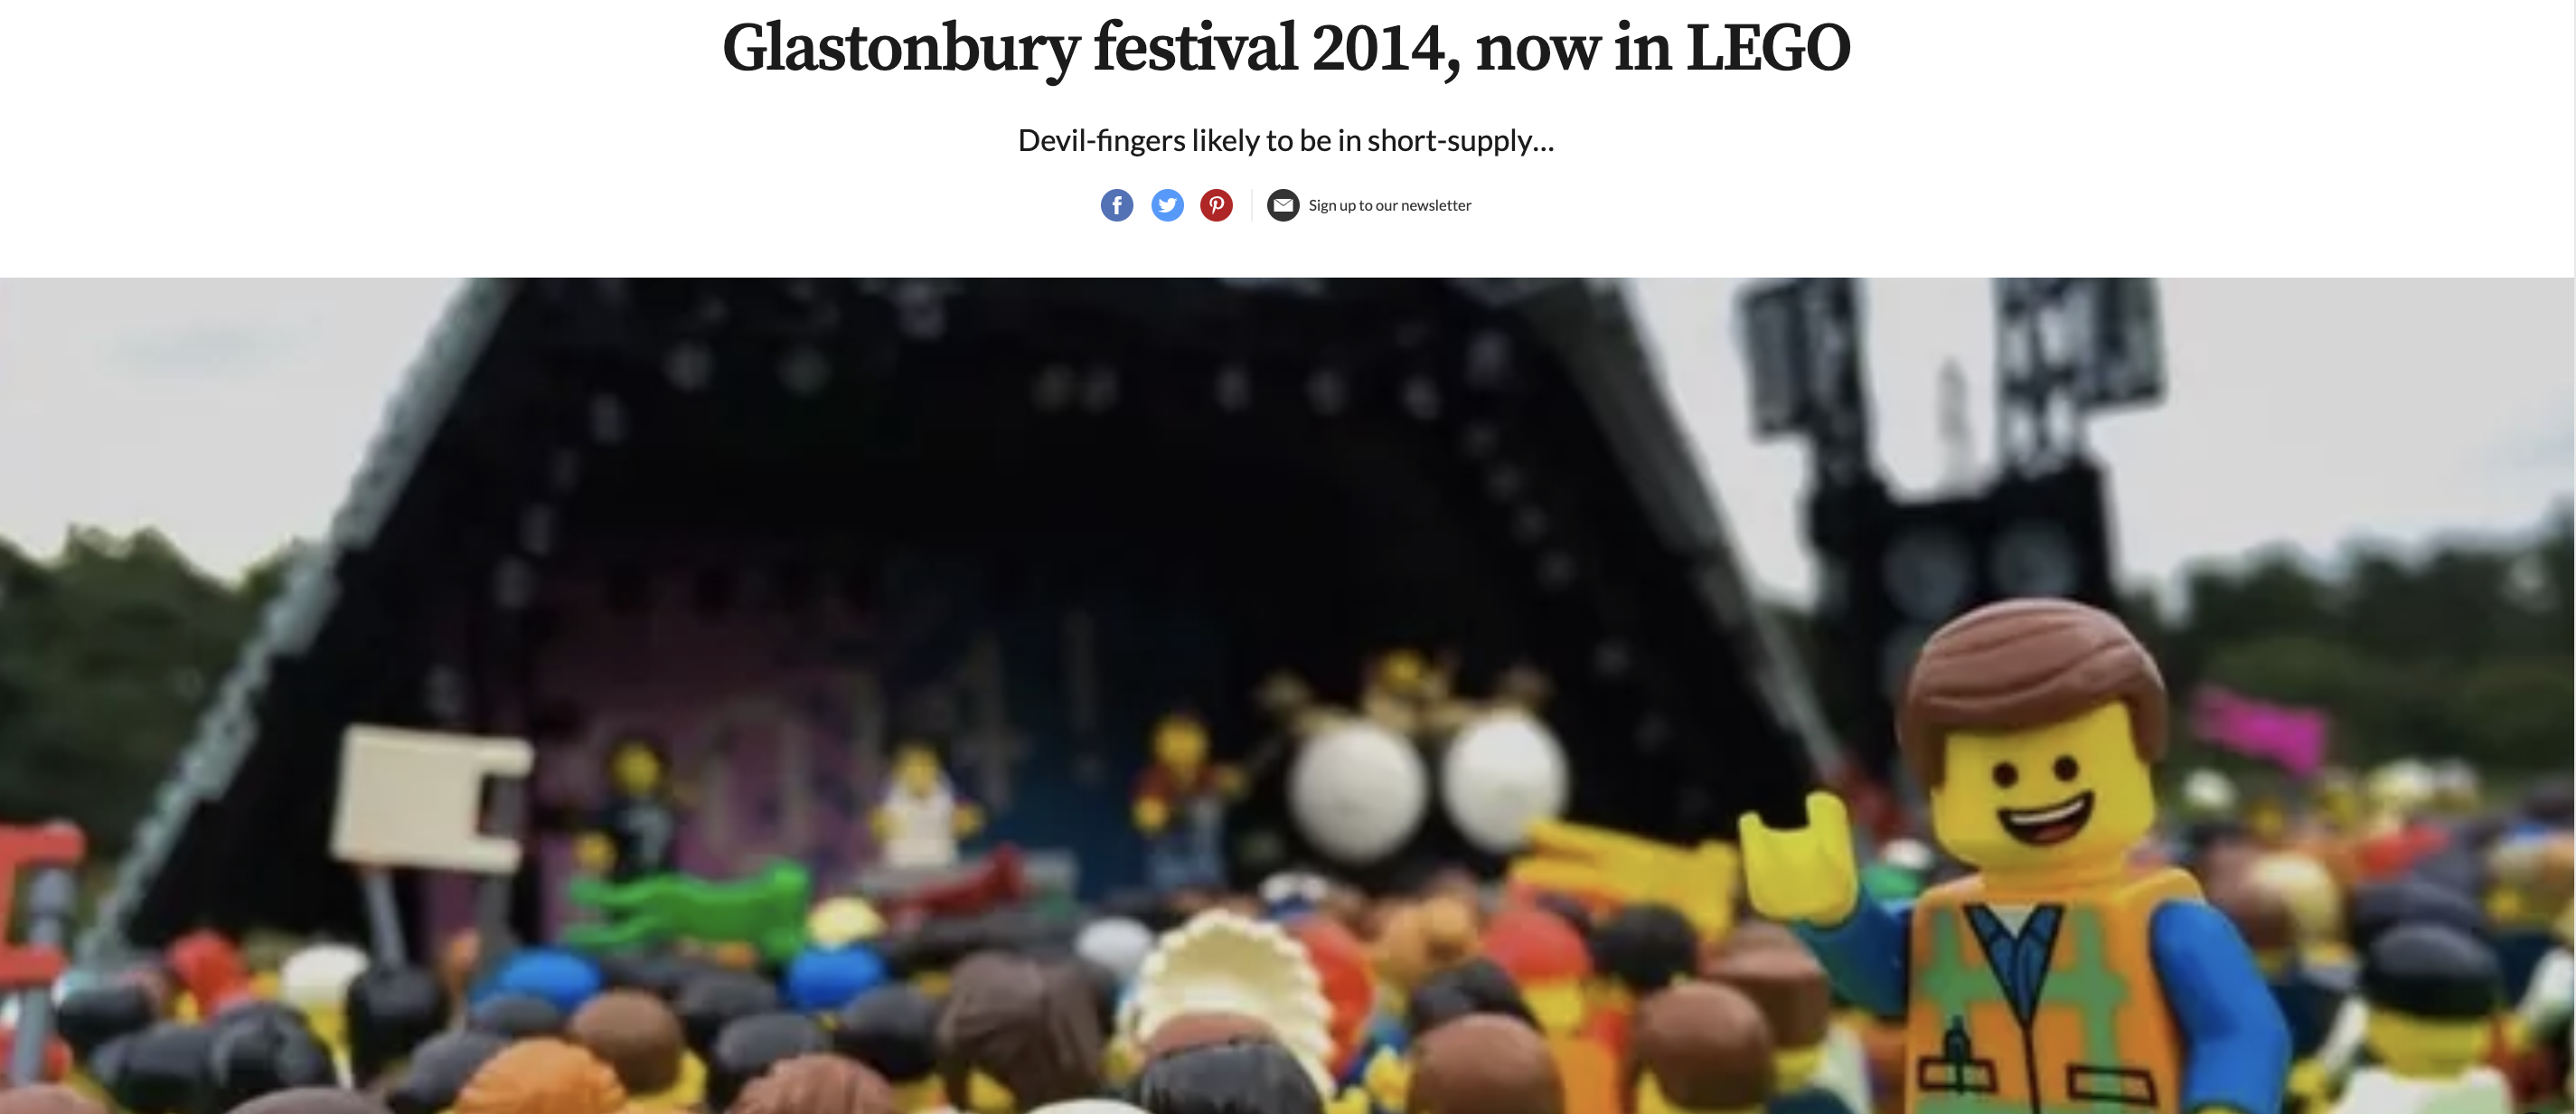 Lego Glastonbury Digital PR